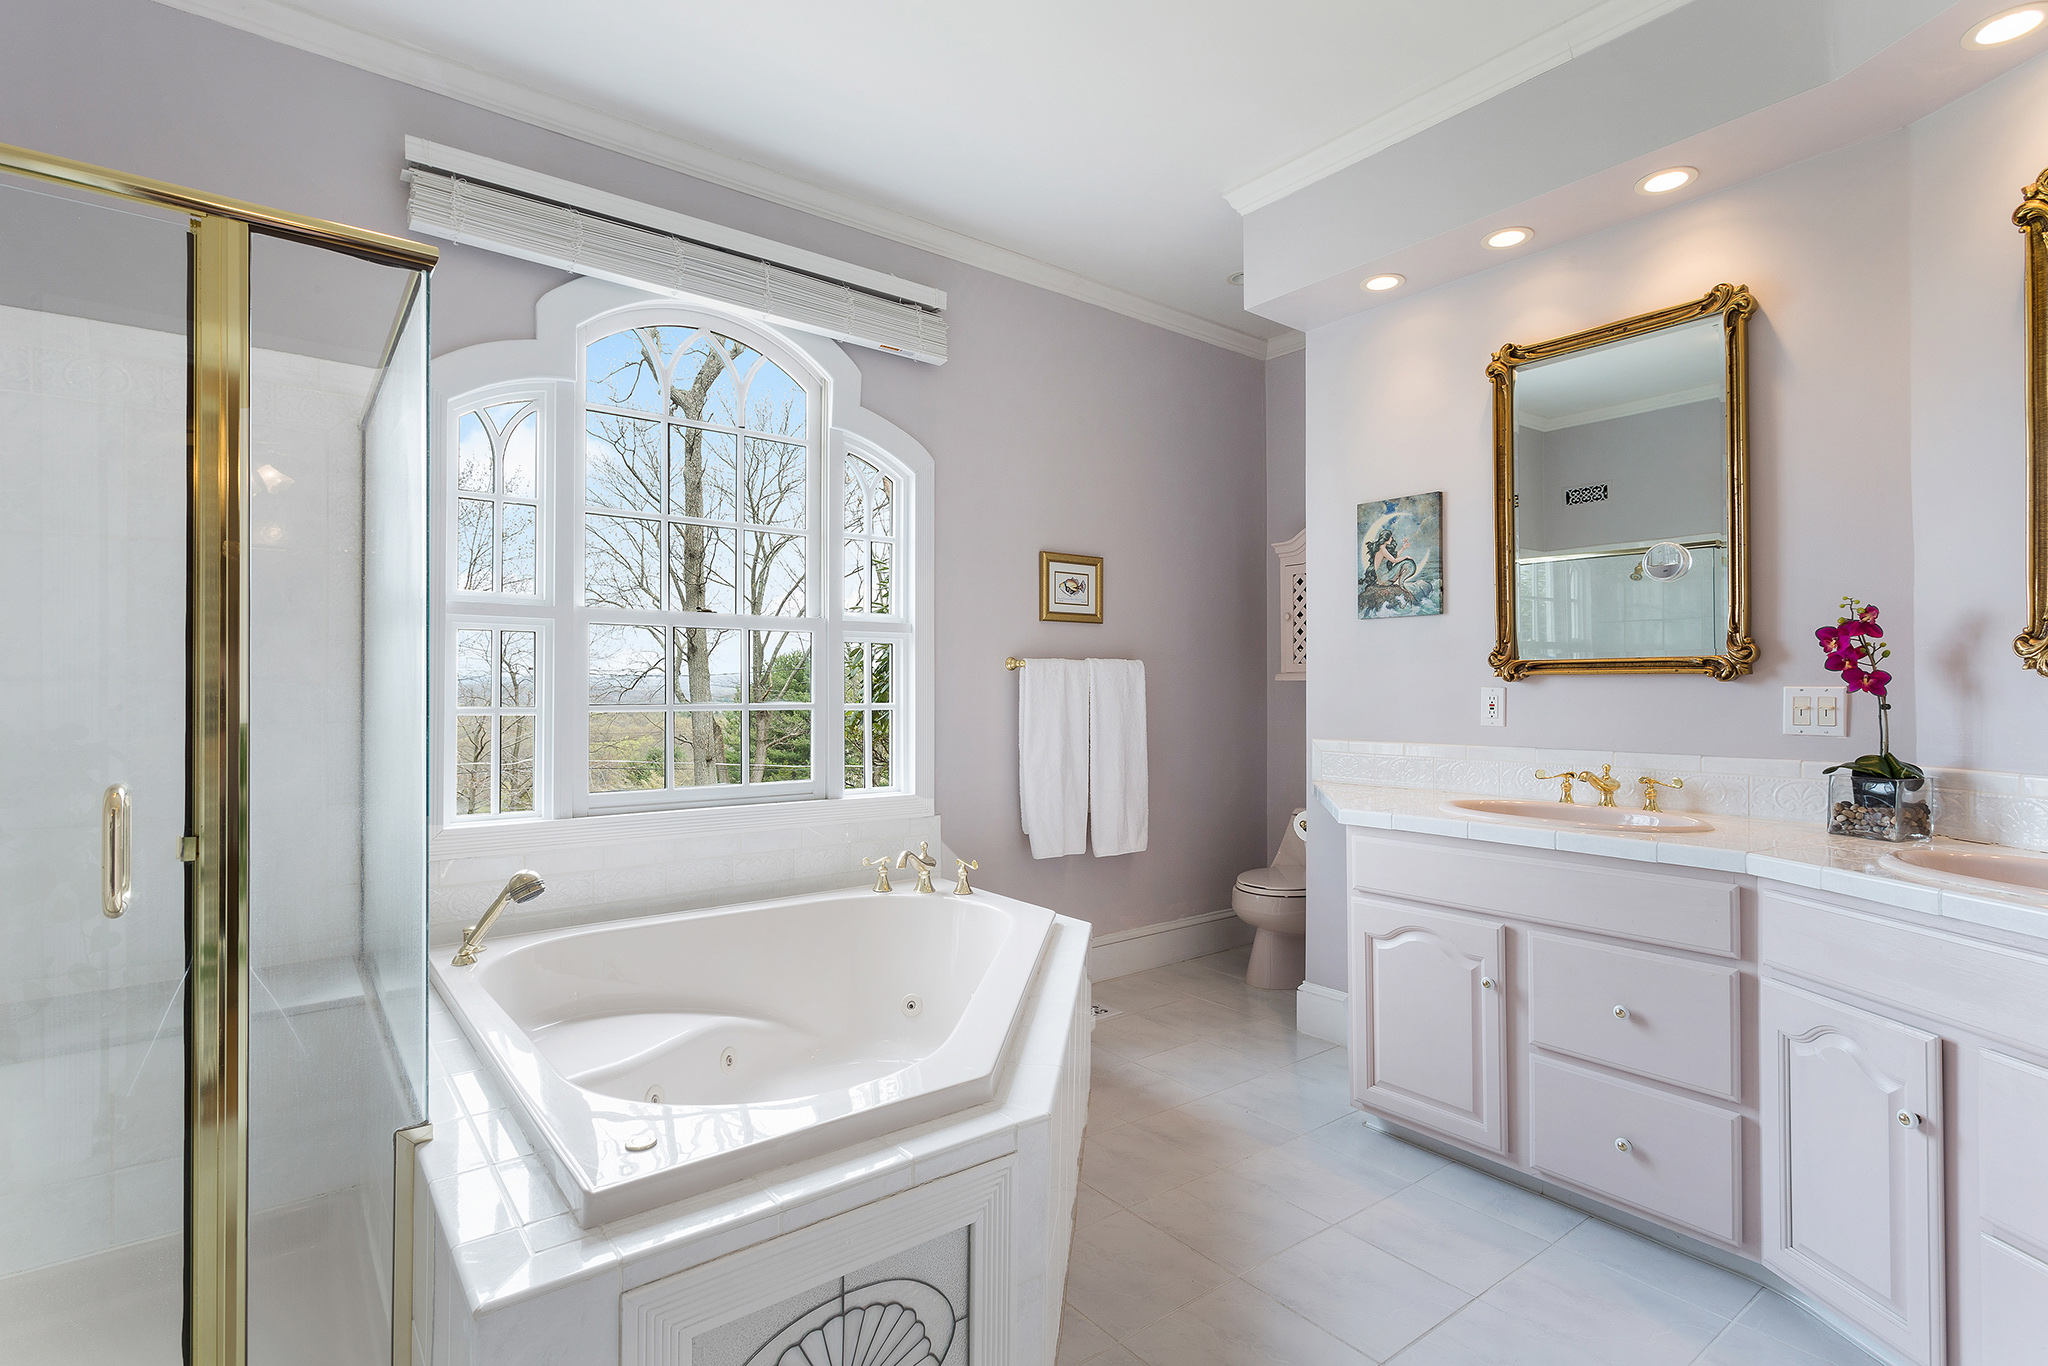 9B 32 Spring Hill Rd, Franklin Township — 2nd Bedroom Bath